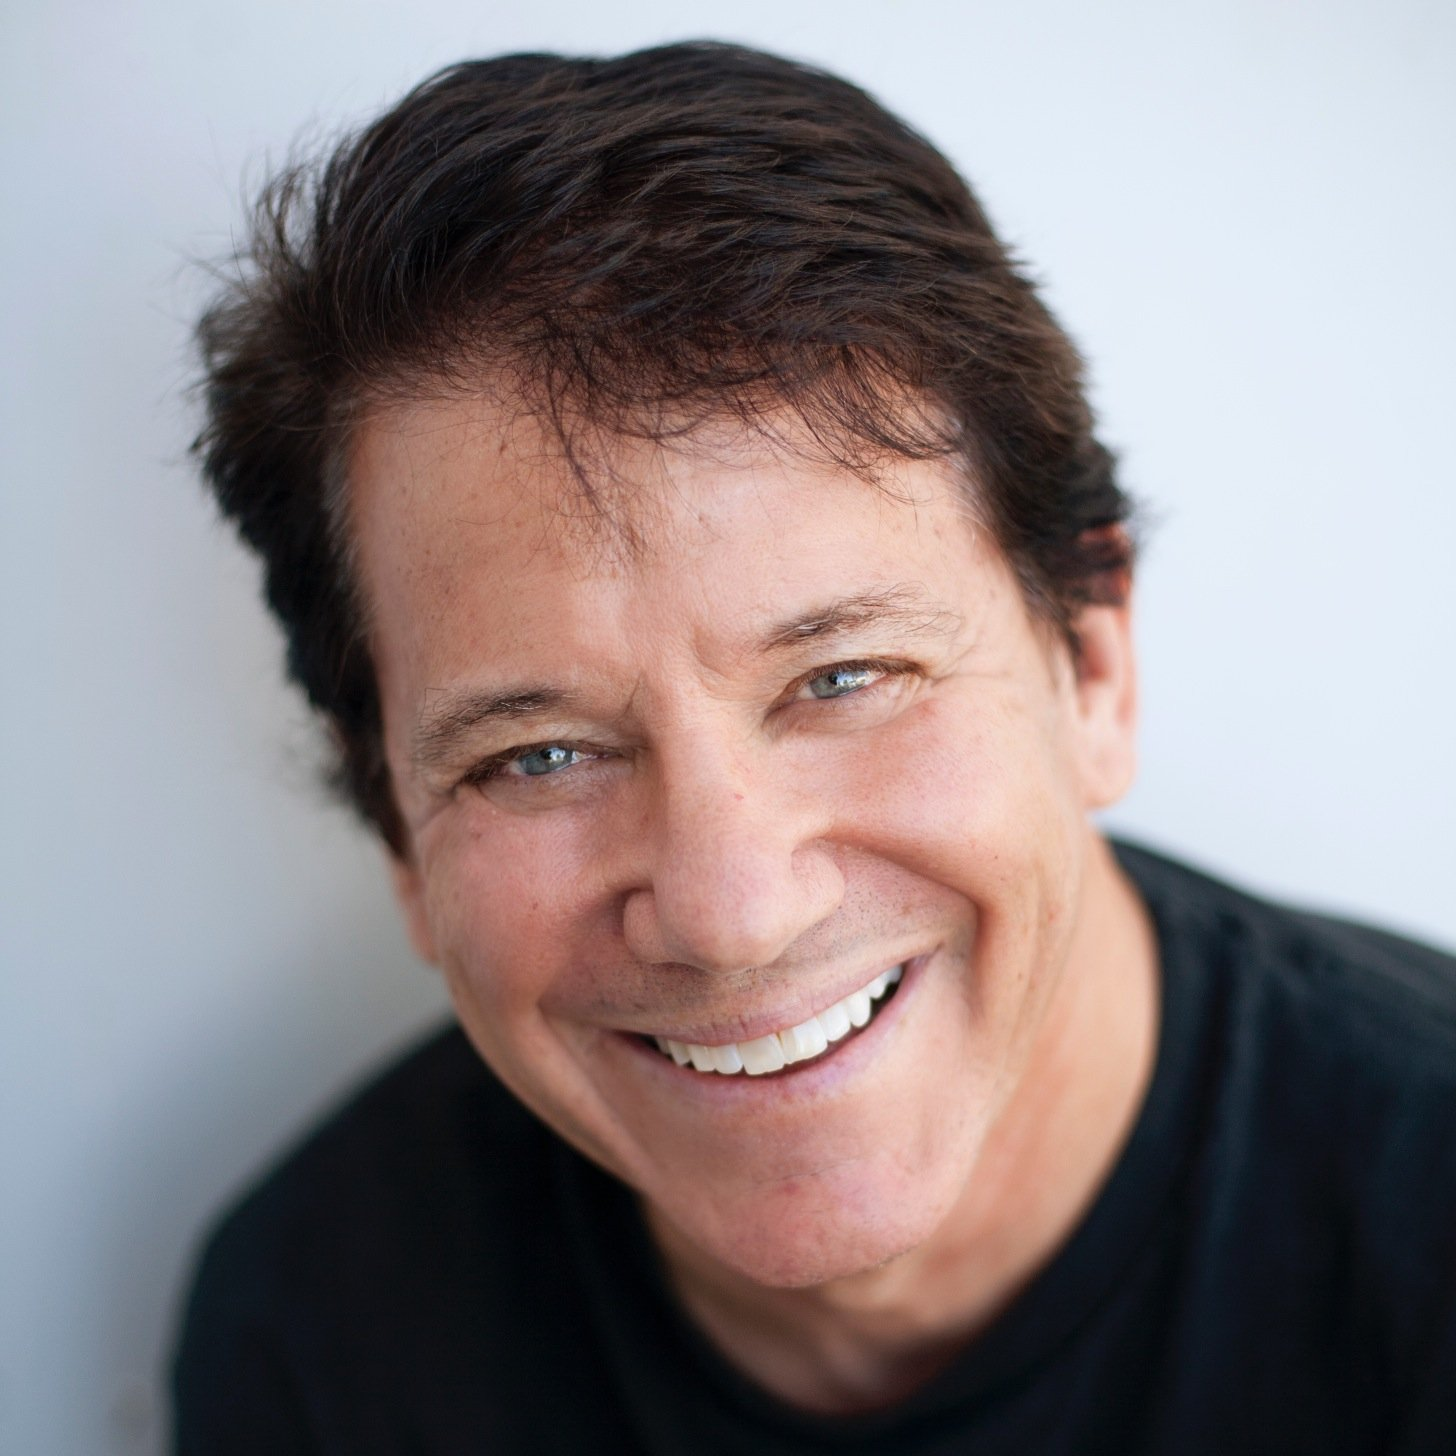 anson williams canceranson williams net worth, anson williams family, anson williams star trek, anson williams singing, anson williams cancer, anson williams george clooney, anson williams imdb, anson williams director, anson williams daughter, anson williams bio, anson williams twitter, anson williams songs, anson williams voyager, anson williams album, anson williams age, anson williams from happy days, anson williams book, anson williams movies, anson williams house, anson williams facebook